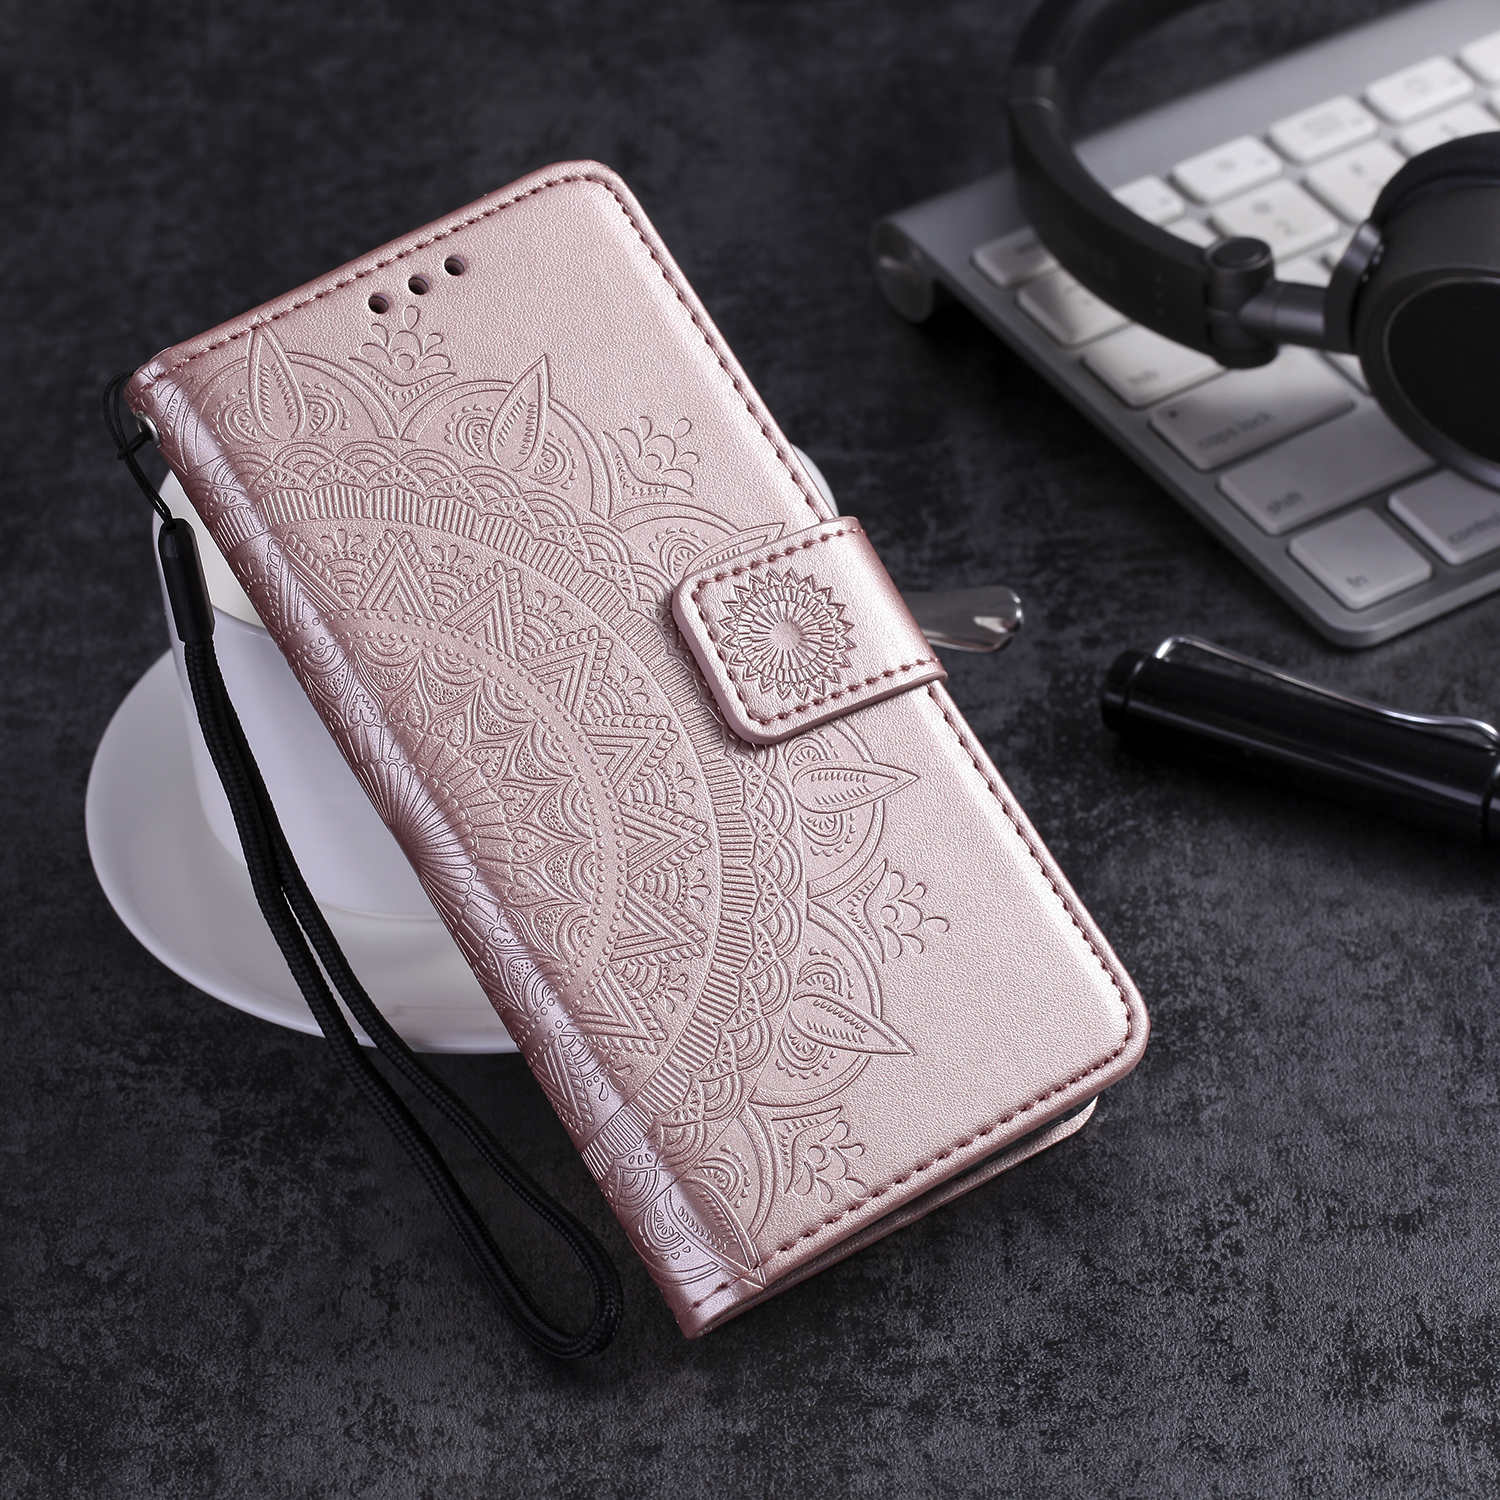 Flip-Card-Slot-Case Leather Wallet Note 8 S9 J6-Plus Samsung Galaxy S10E For S8 A30 A50